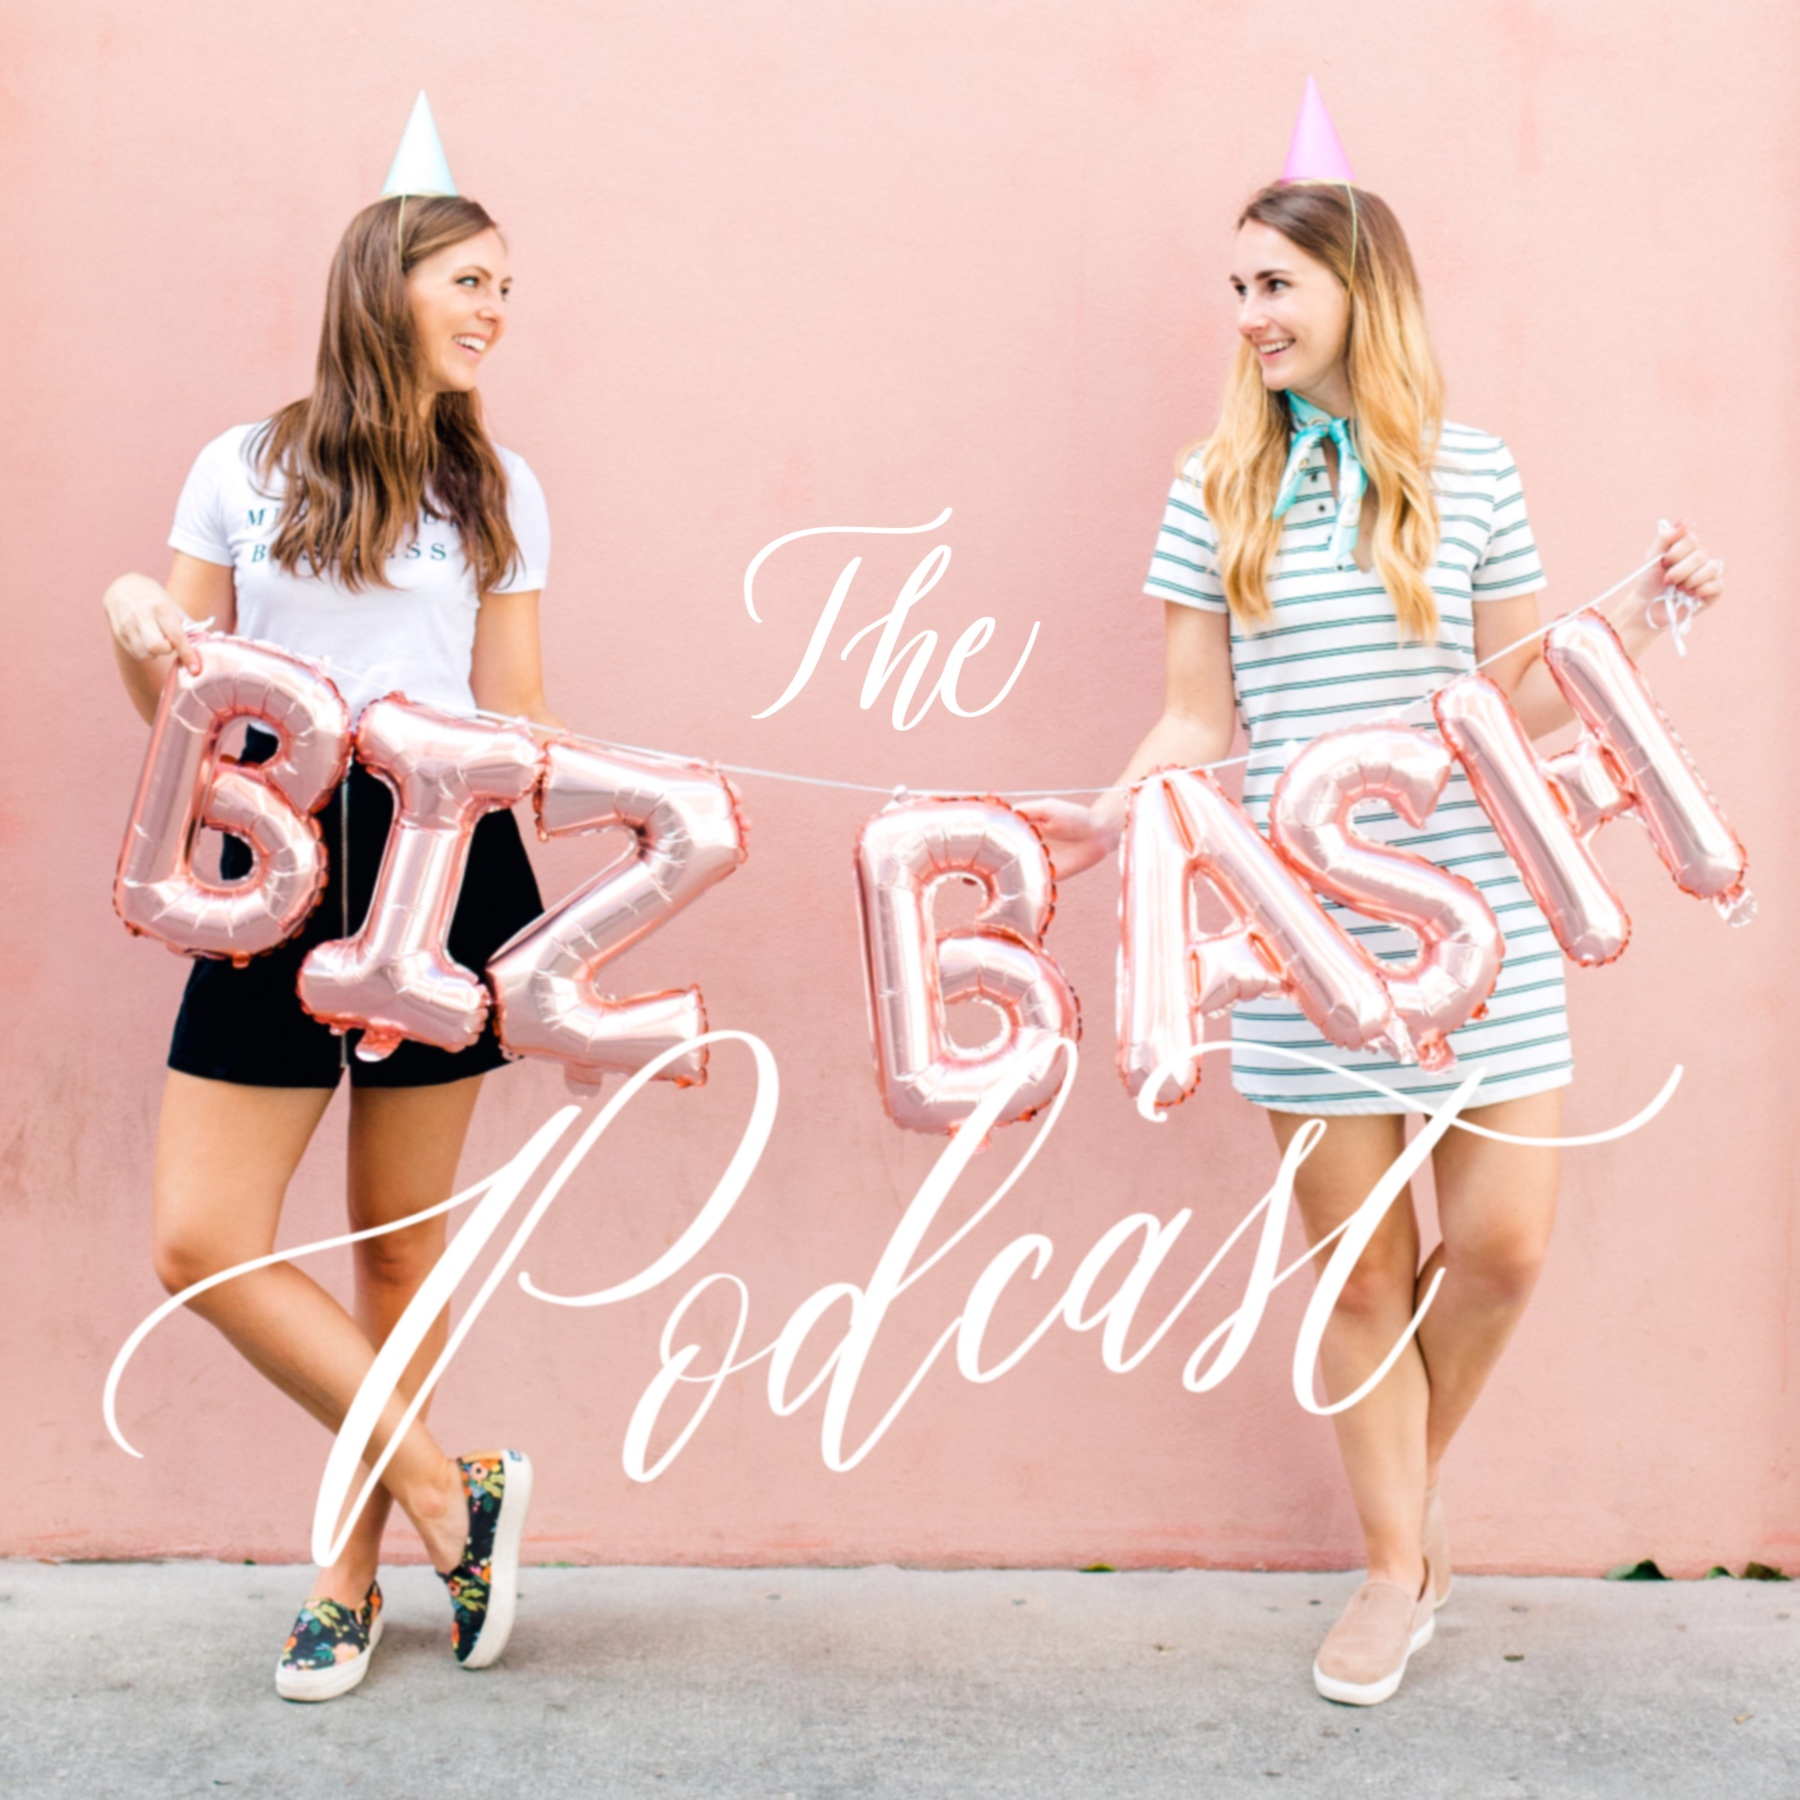 THE BIZ BASH PODCAST - Hosts Cami & Elisabeth bring you fresh and funny conversations about running a small creative business and dish out the real deal on what it's like to be your own boss, design invitations for high-end clients, network in the wedding industry and more!